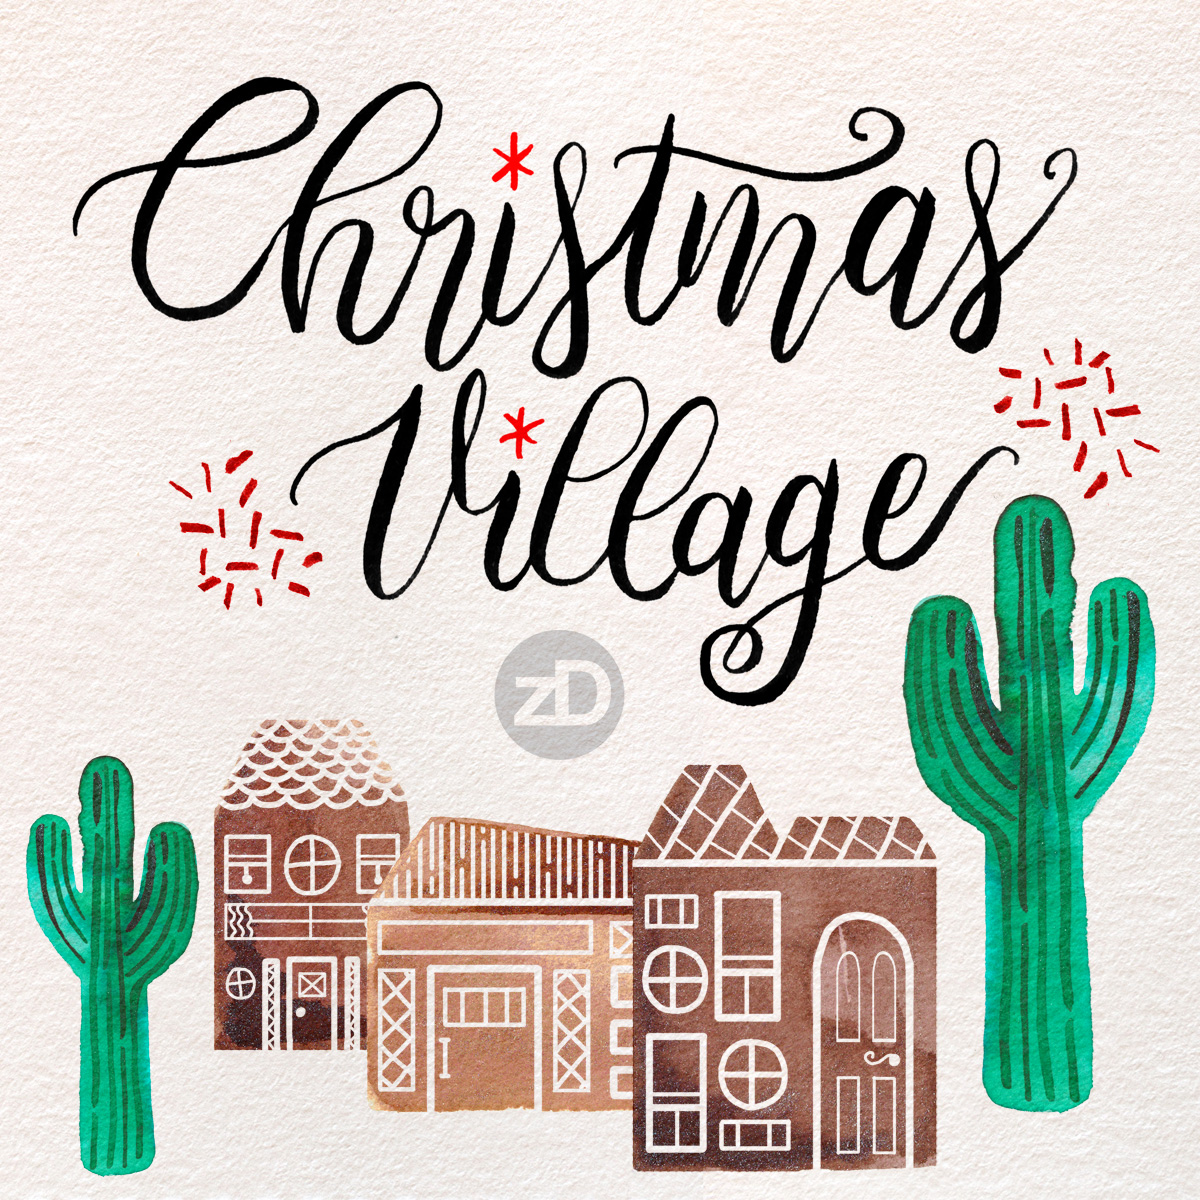 Zirkus Design | Advent Illustrations - Christmas Village - Watercolor, Gouache, Digital Painting, Lettering